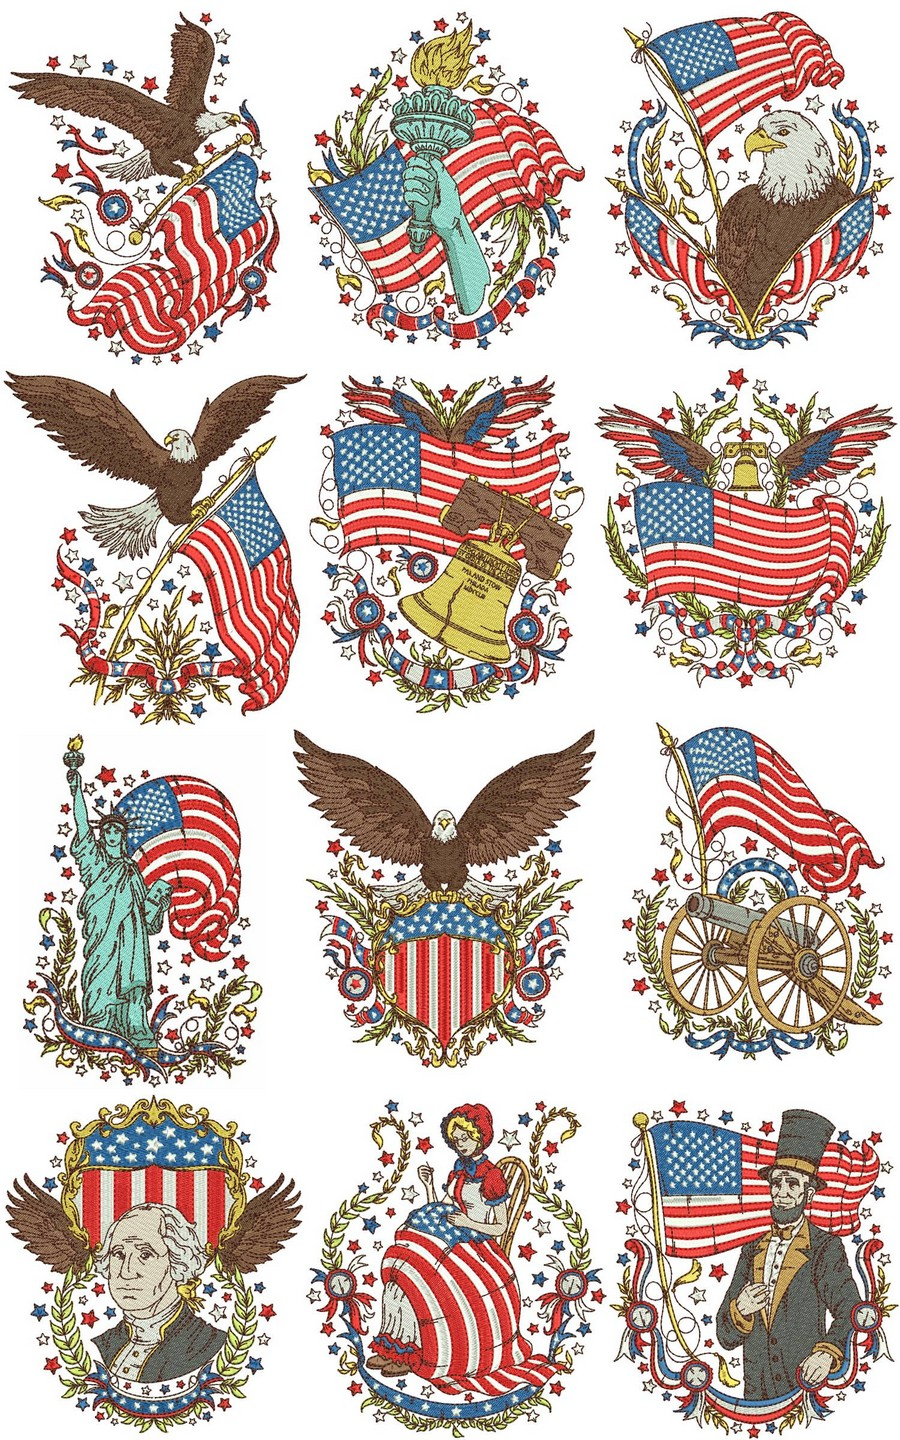 Vintage Americana | Machine Embroidery Designs By Sew Swell